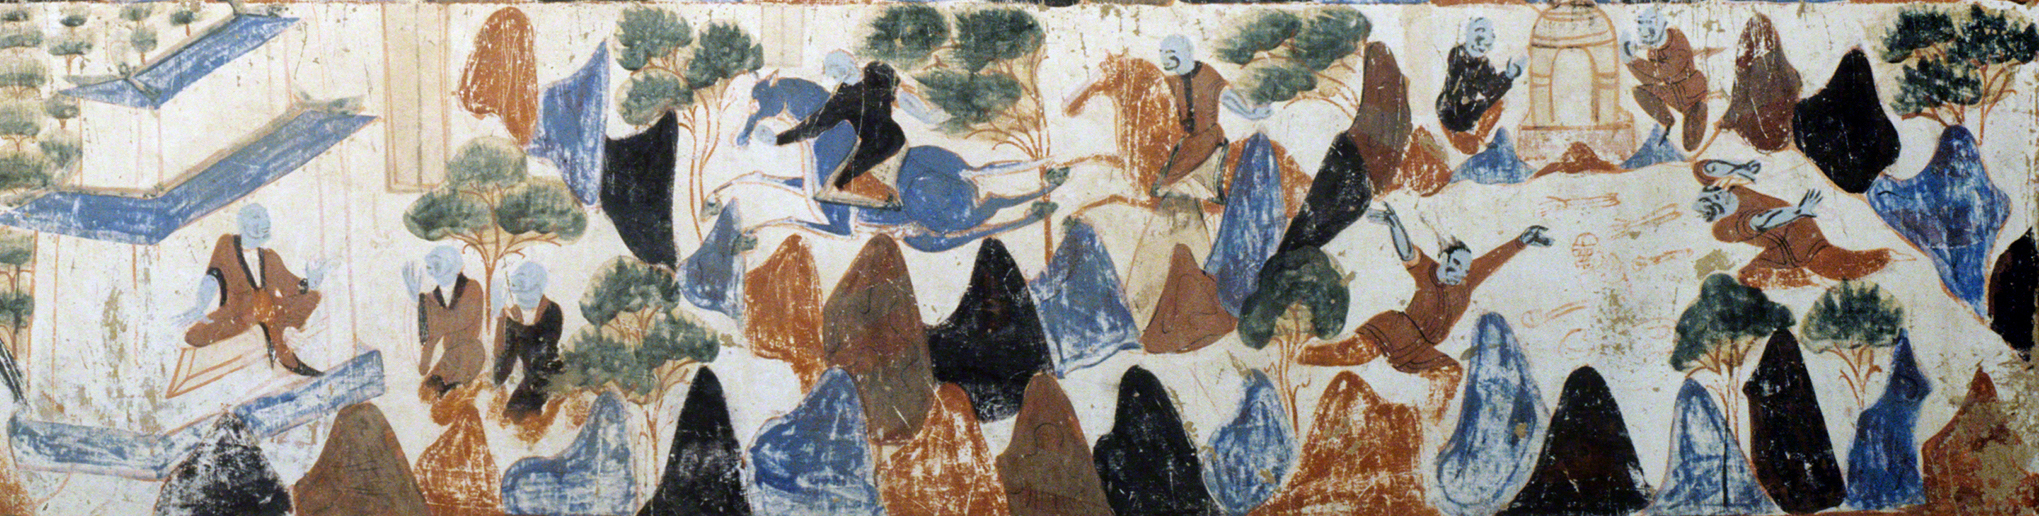 Detail of the grieving brothers and their return to the palace. Third register.   Mogao Cave 428. Northern Zhou, 557-581 CE. Dunhuang. Image courtesy of the Dunhuang Academy.